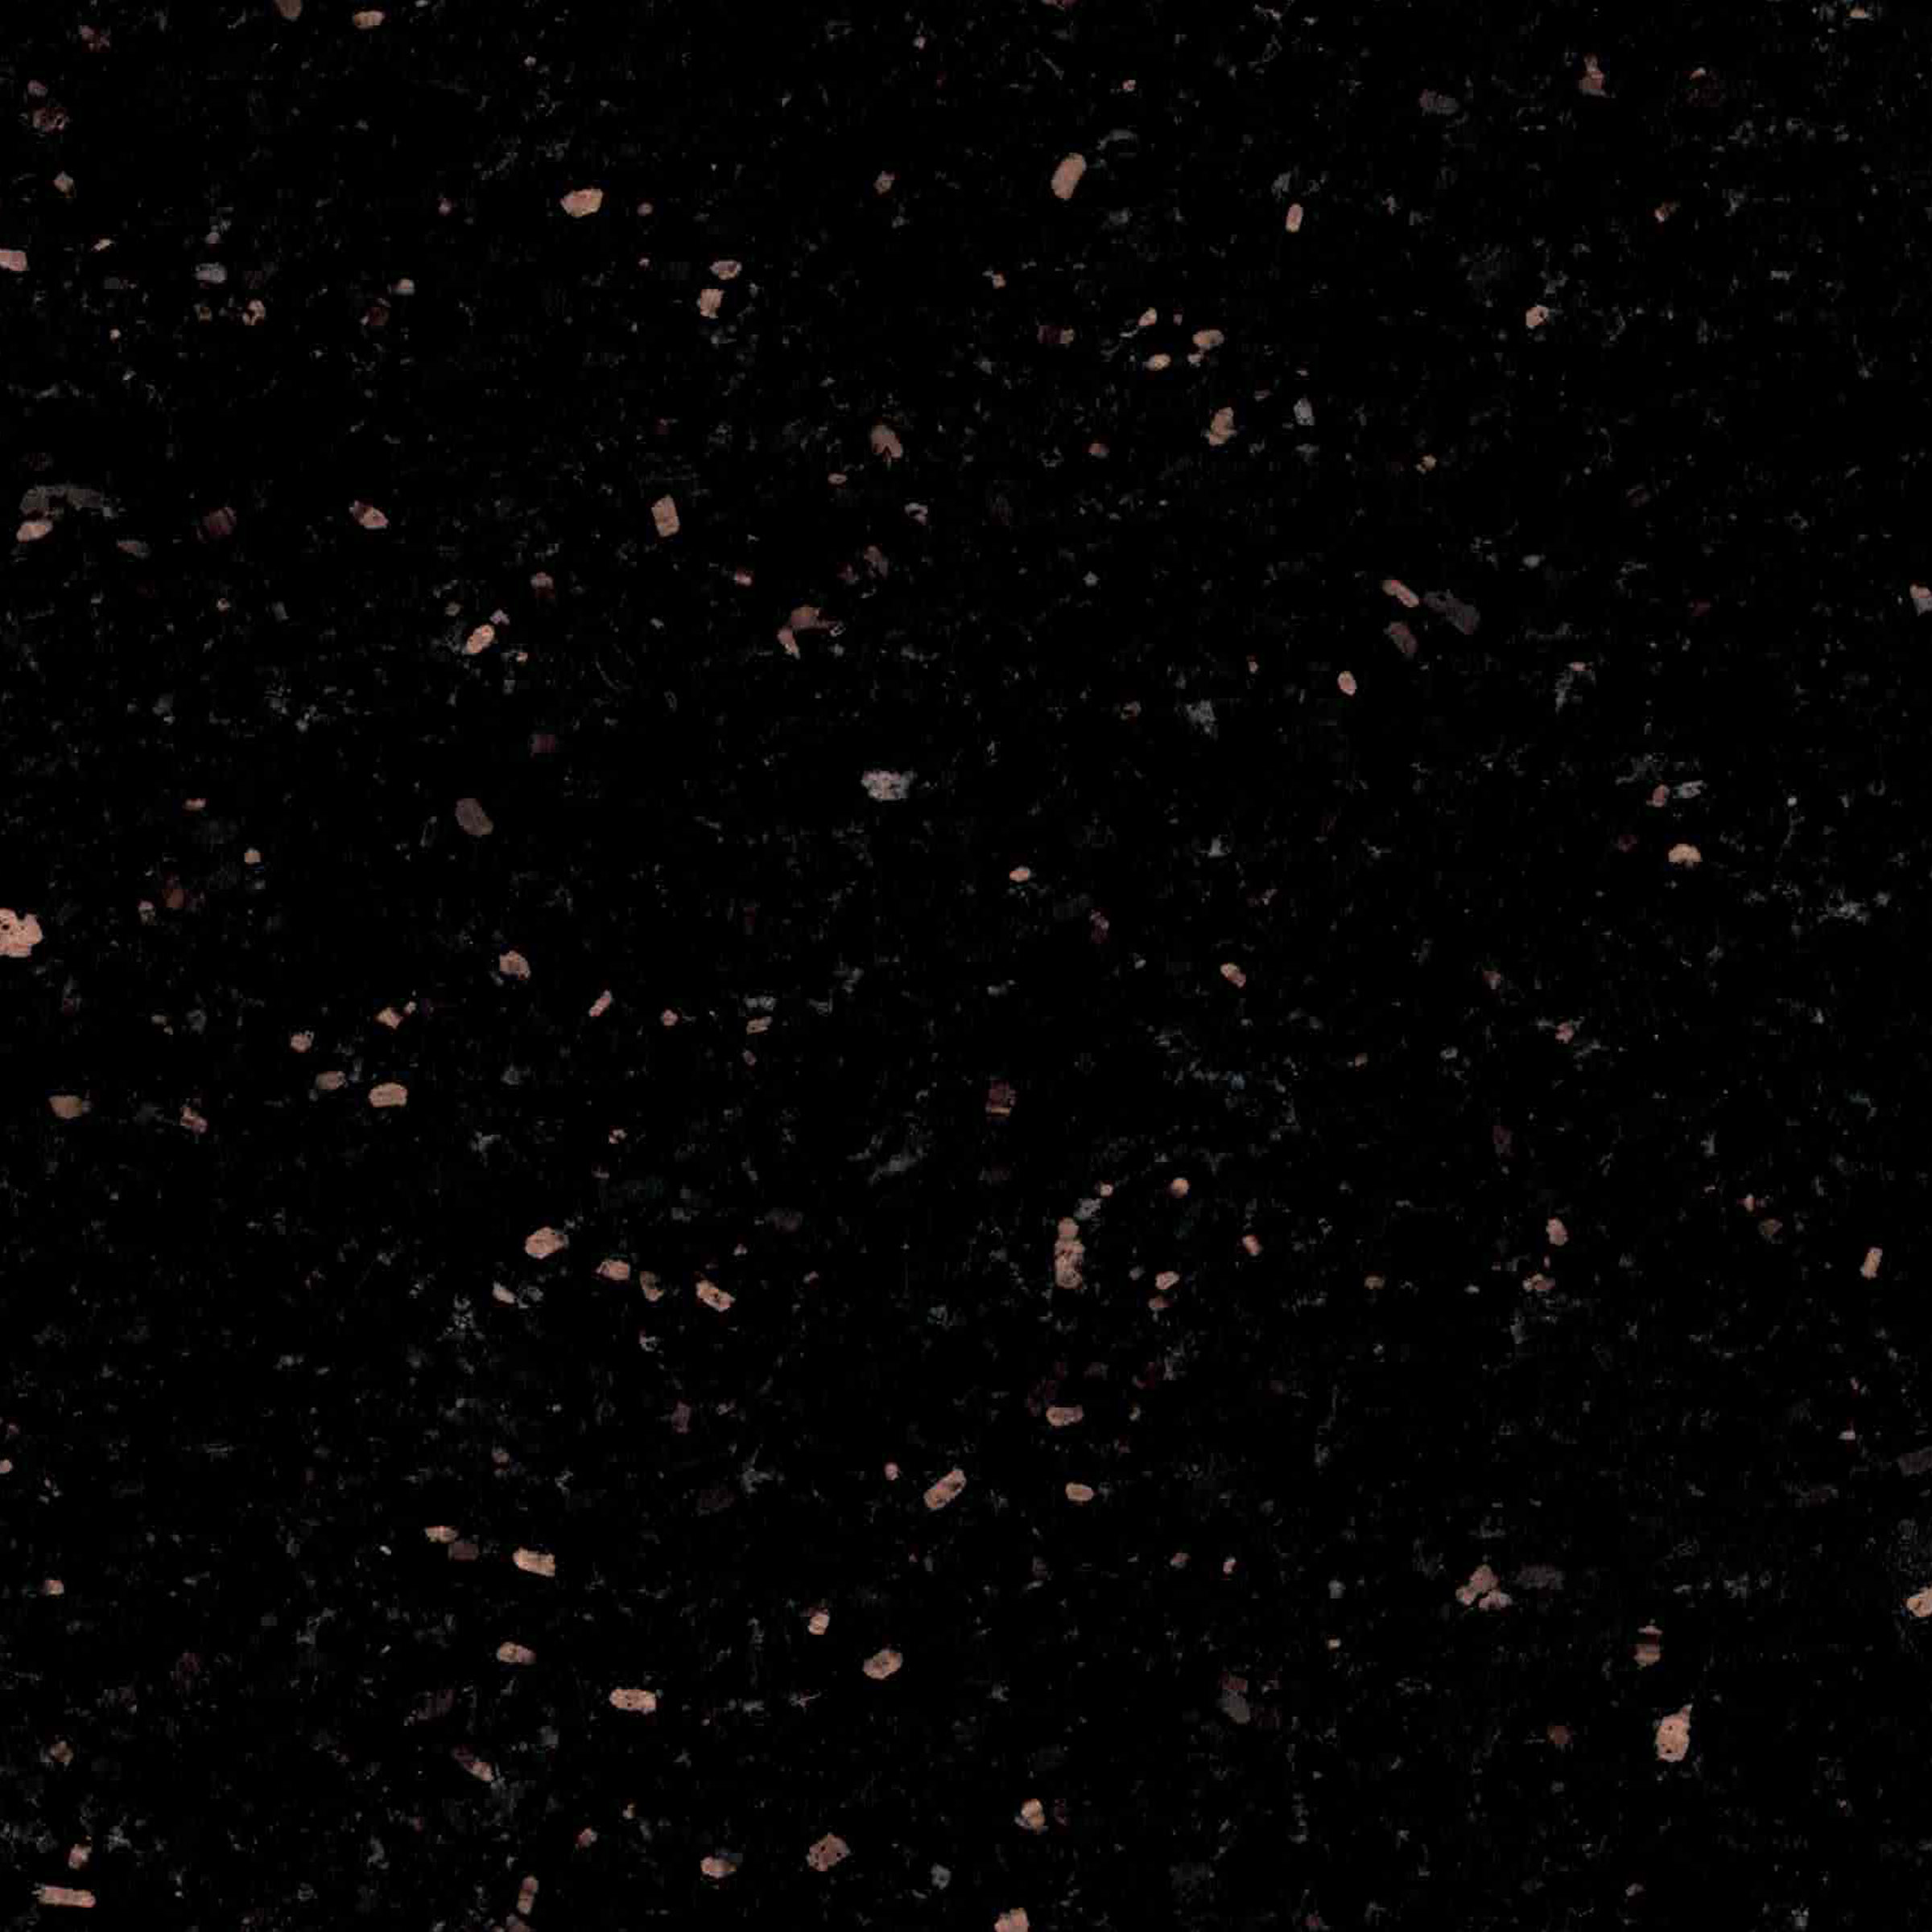 Black Galaxy - Granijem